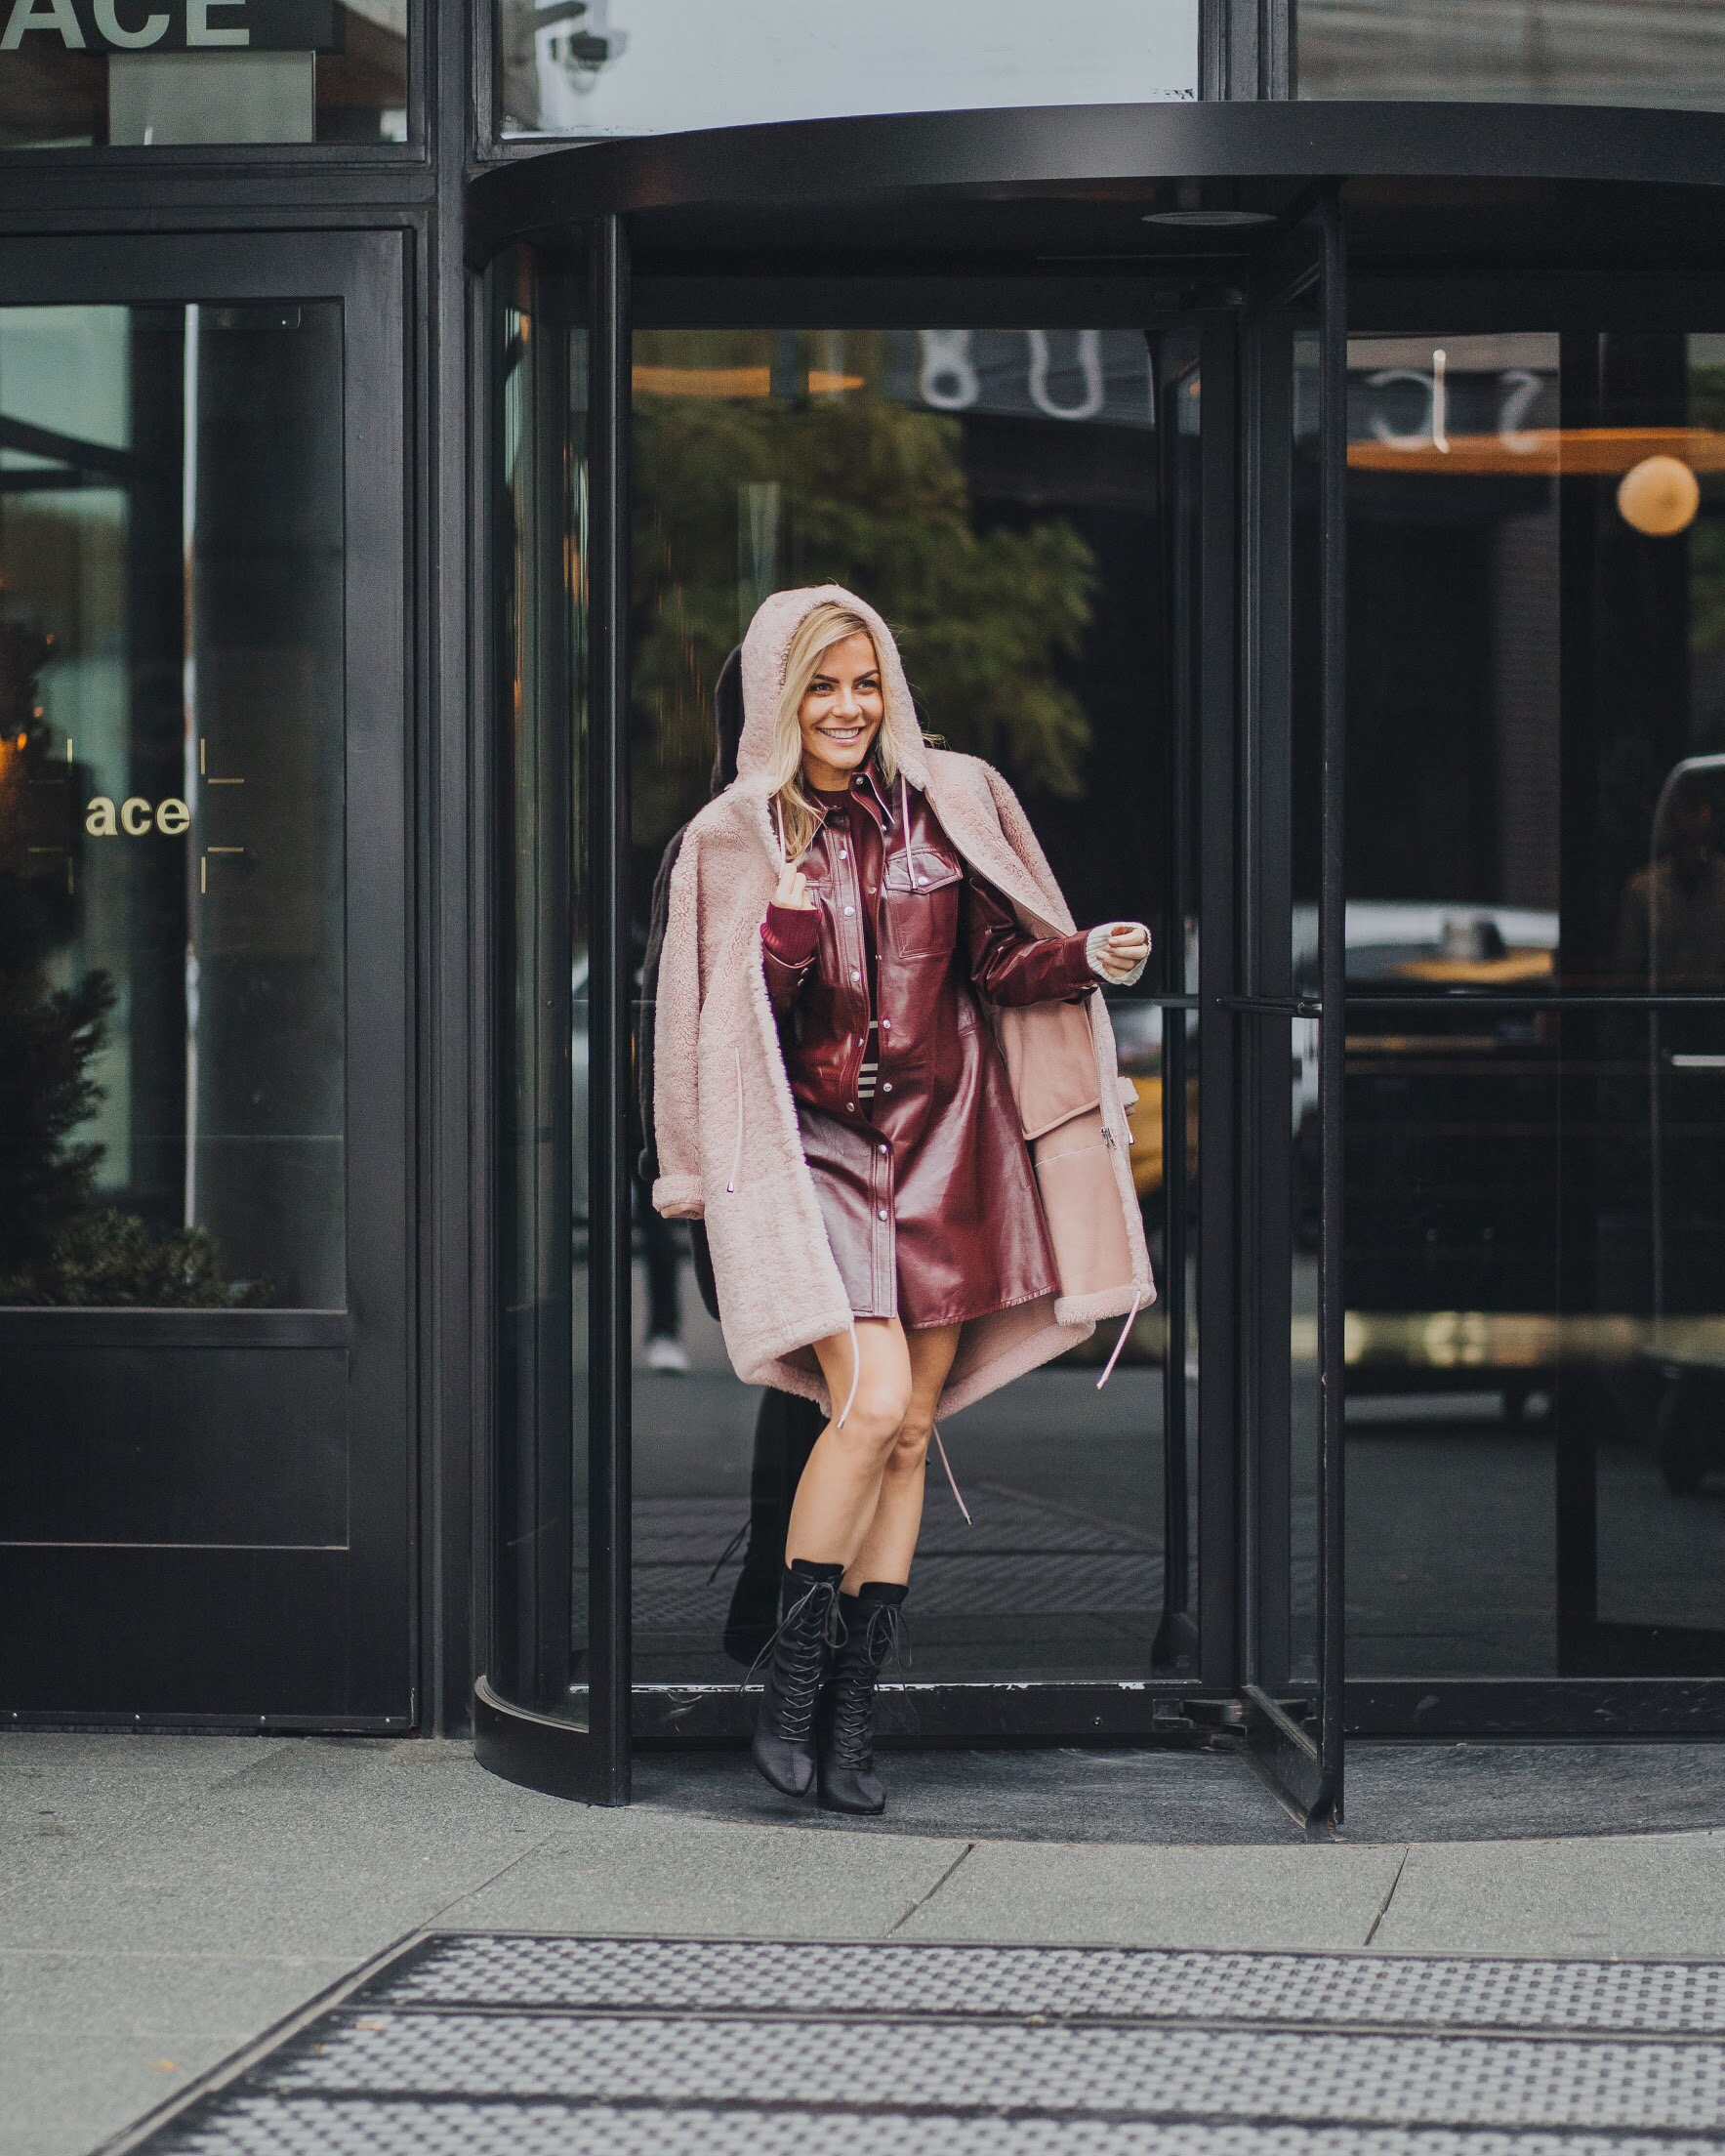 Monika Dixon of Monika Dixon Public Relations is wearing a Calvin Klein sweater under a Calvin Klein leather dress paired with an Anne Vest jacket.